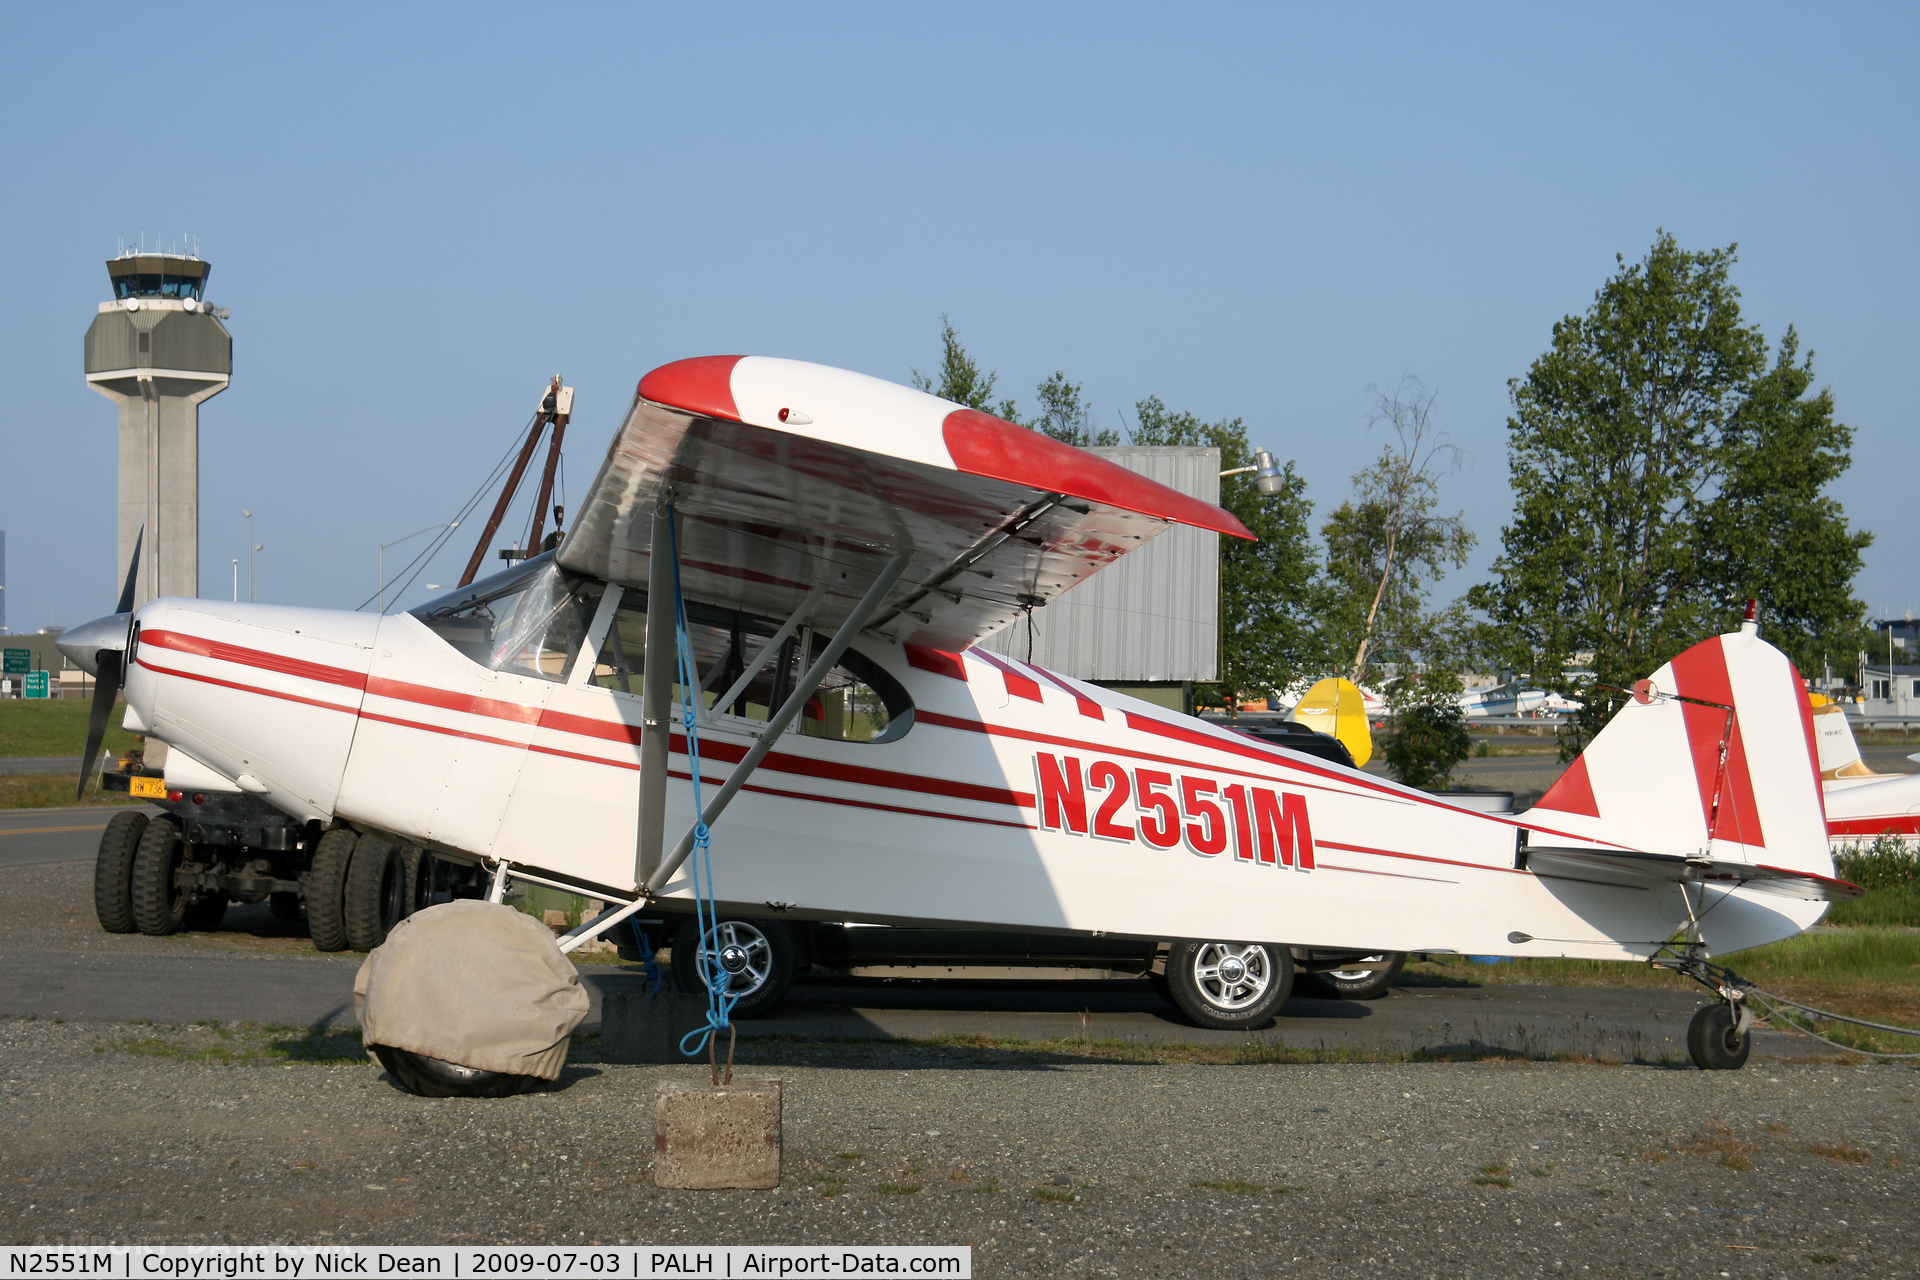 N2551M, 1946 Piper PA-12 Super Cruiser C/N 12-920, PALH